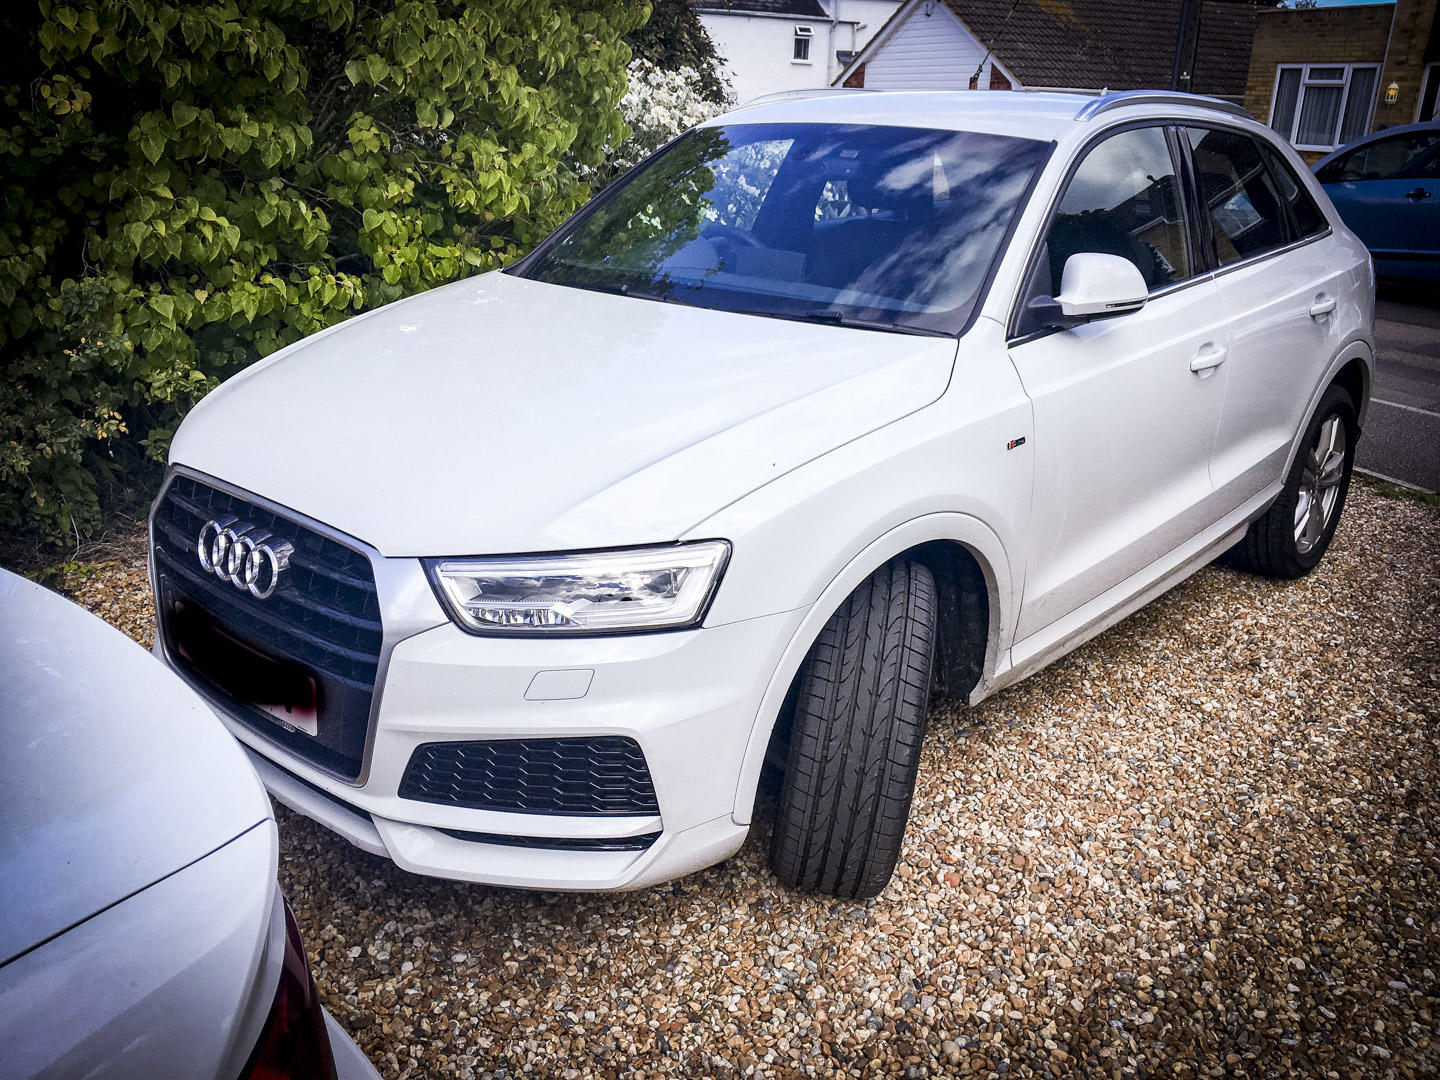 Glacier White Audi Q3 front side on view on a driveway.